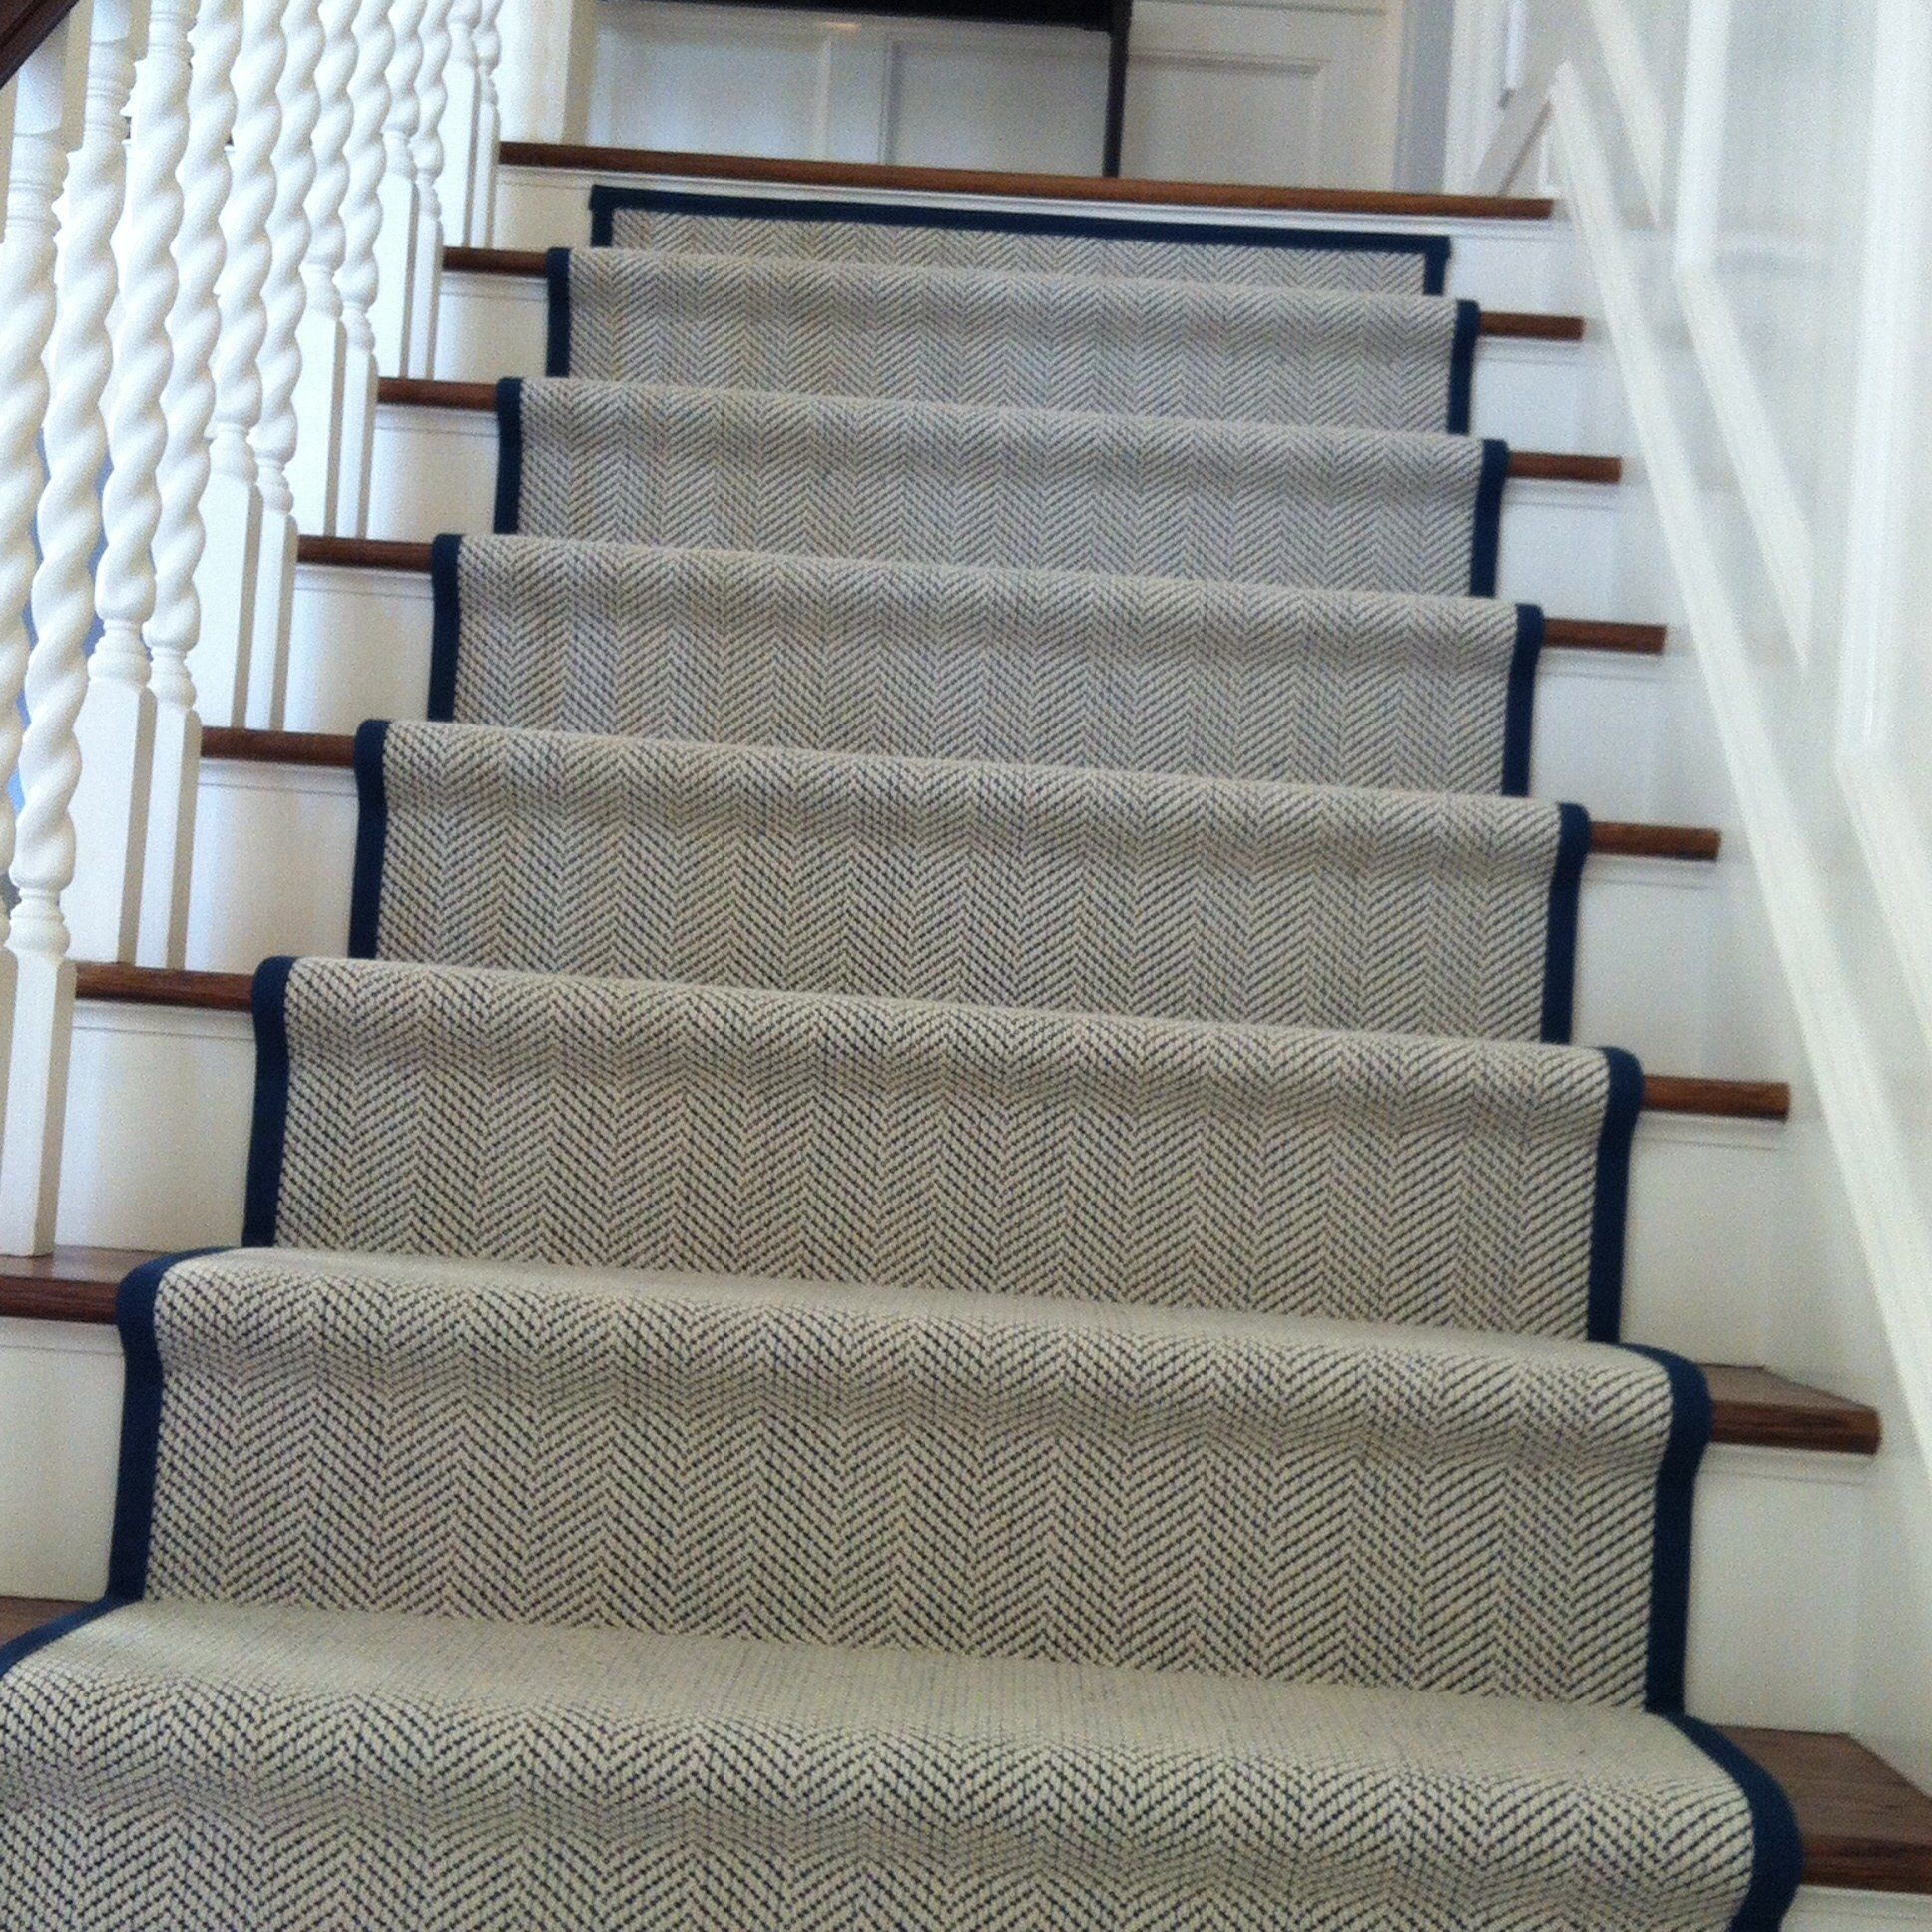 My New Staircase Runner Herringbone With A Marine Blue